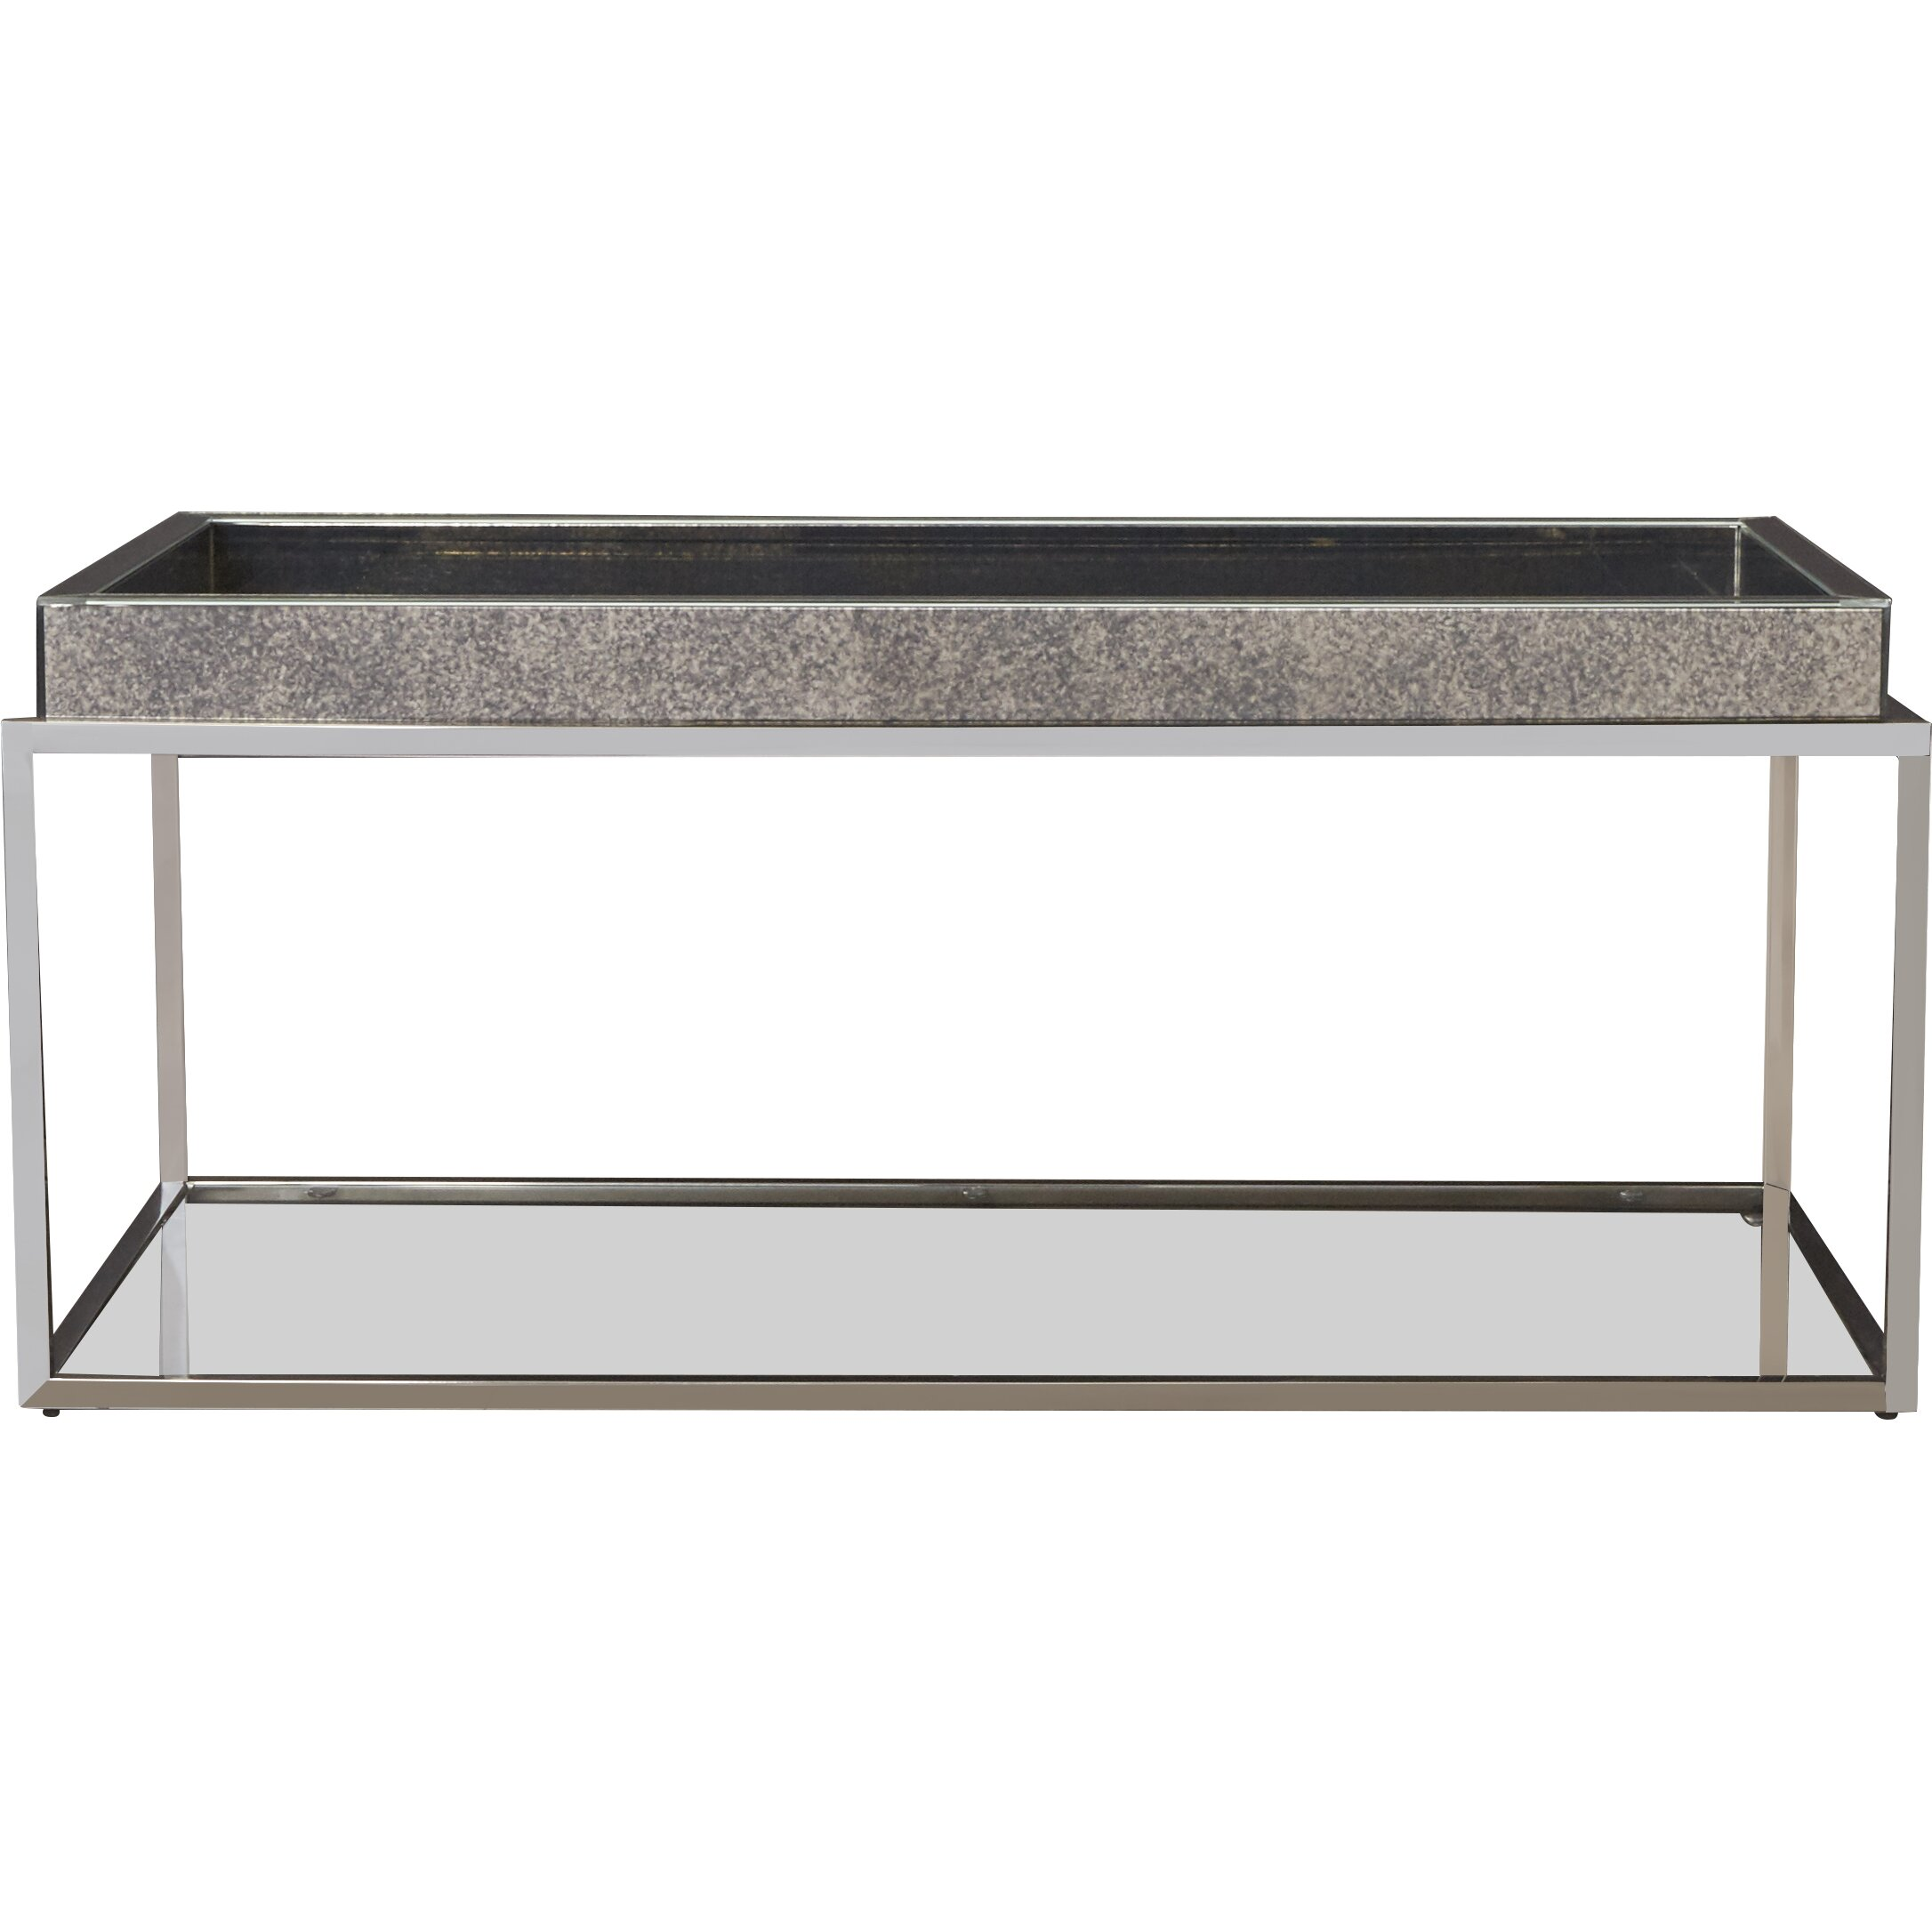 Coffee Table With Tray Top: House Of Hampton Ramillies Coffee Table With Tray Top